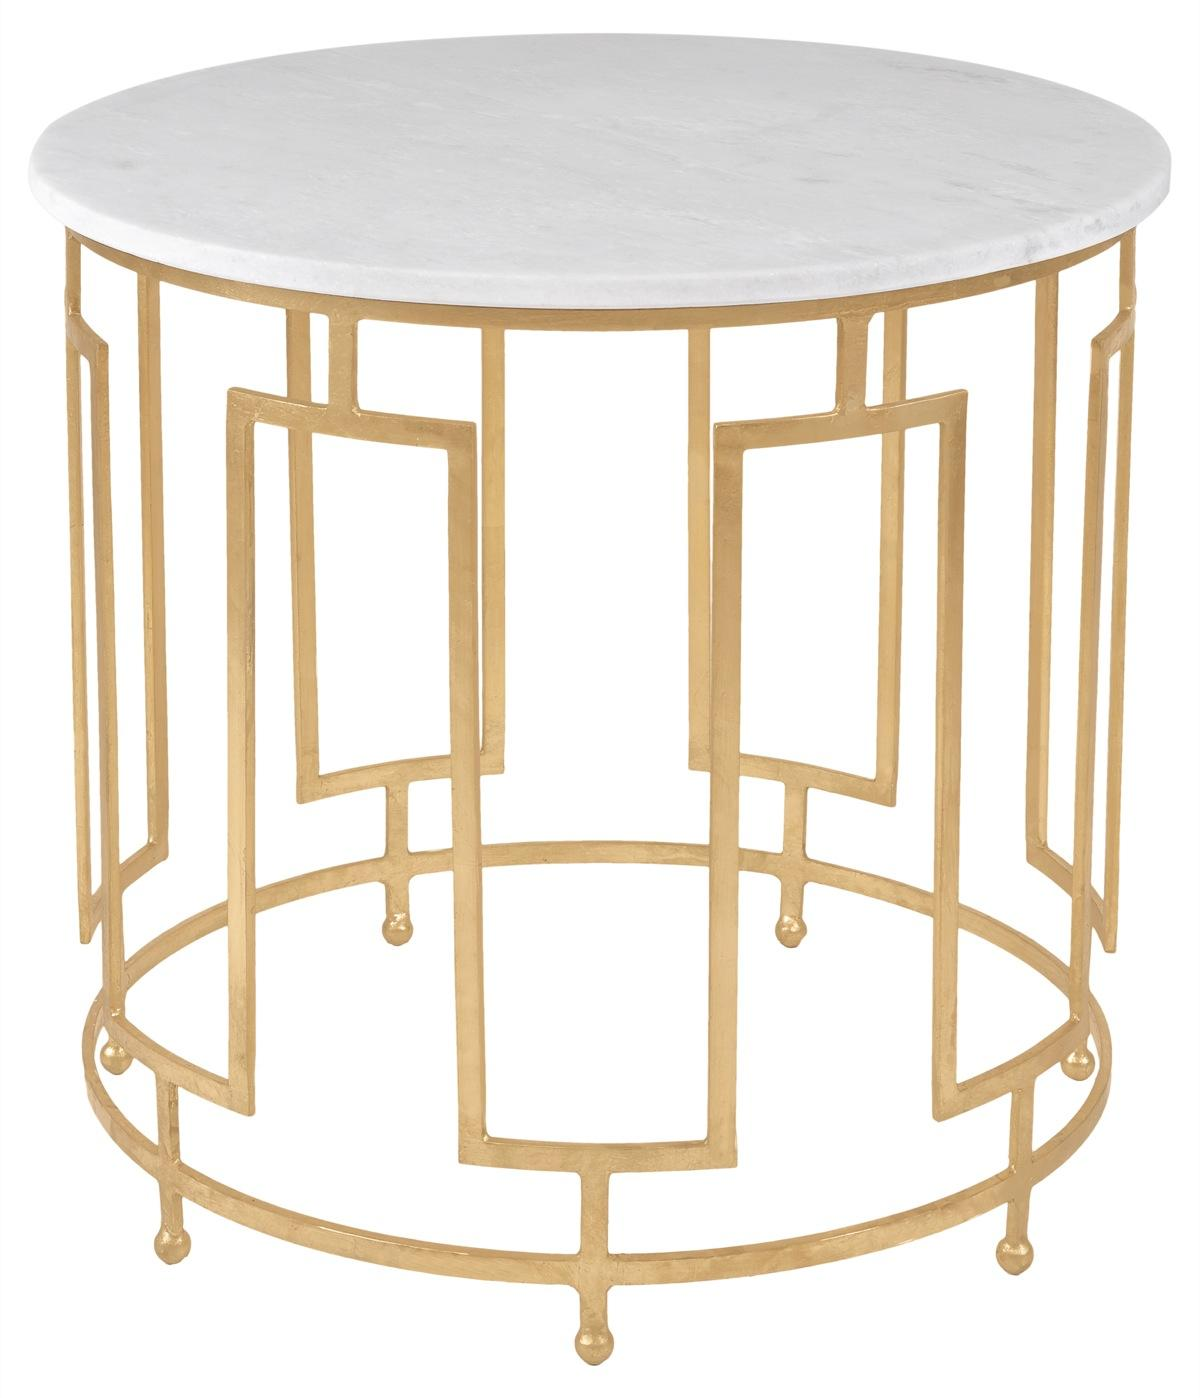 marble accent table limetennis front signy drum caldwell white cabinet with doors bistro umbrella hole inch square tablecloth wooden threshold bar round folding target modern